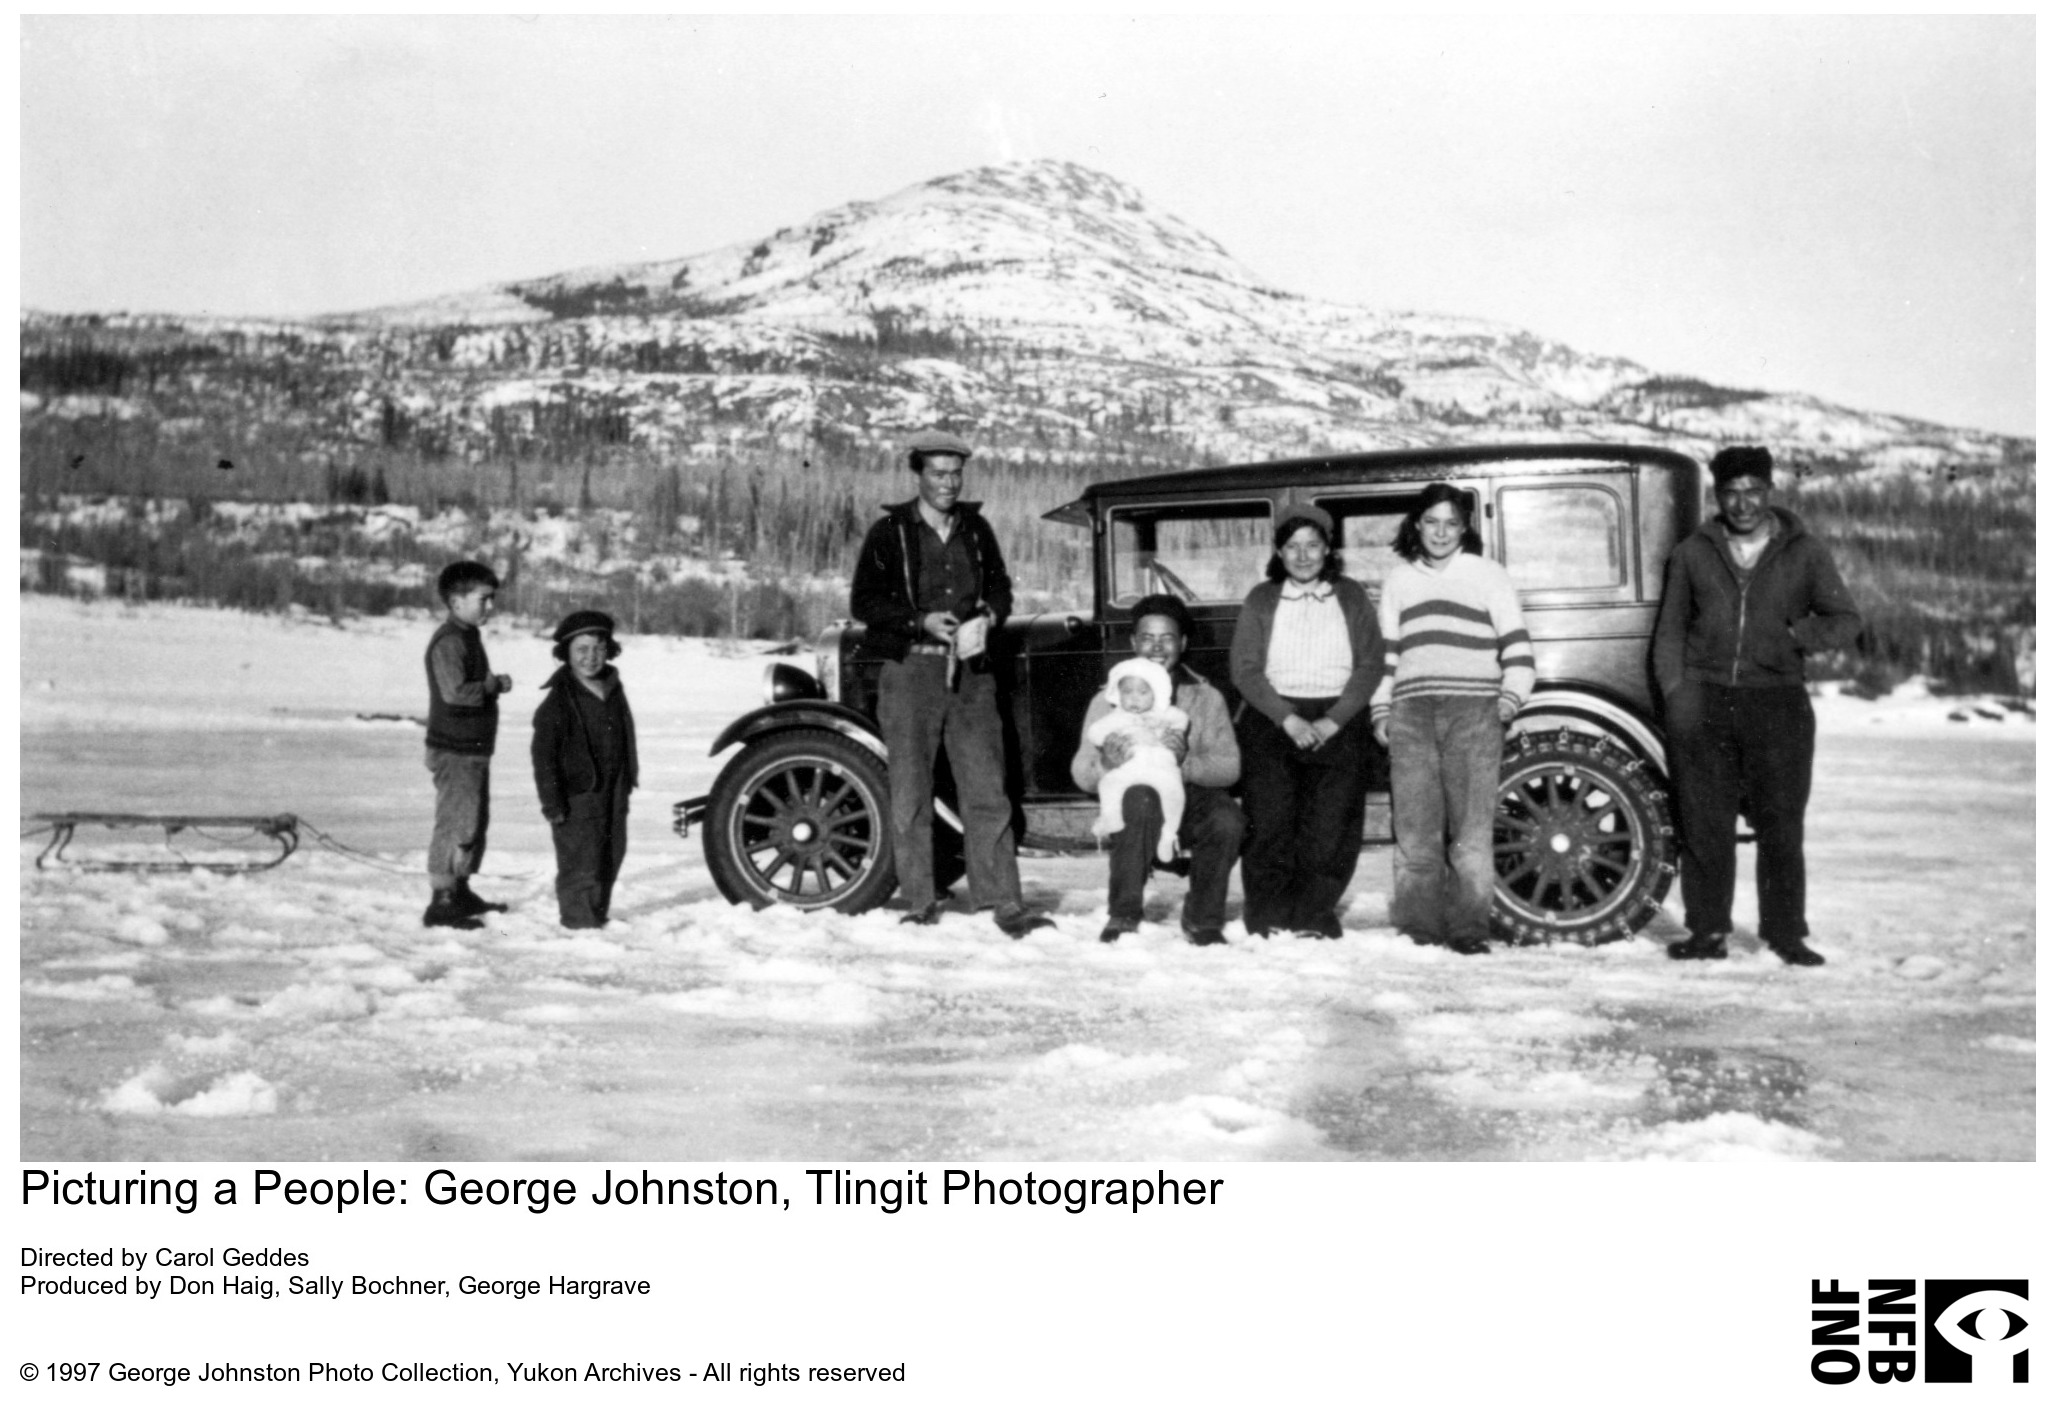 Picturing a People: George Johnston, Tlingit Photographer